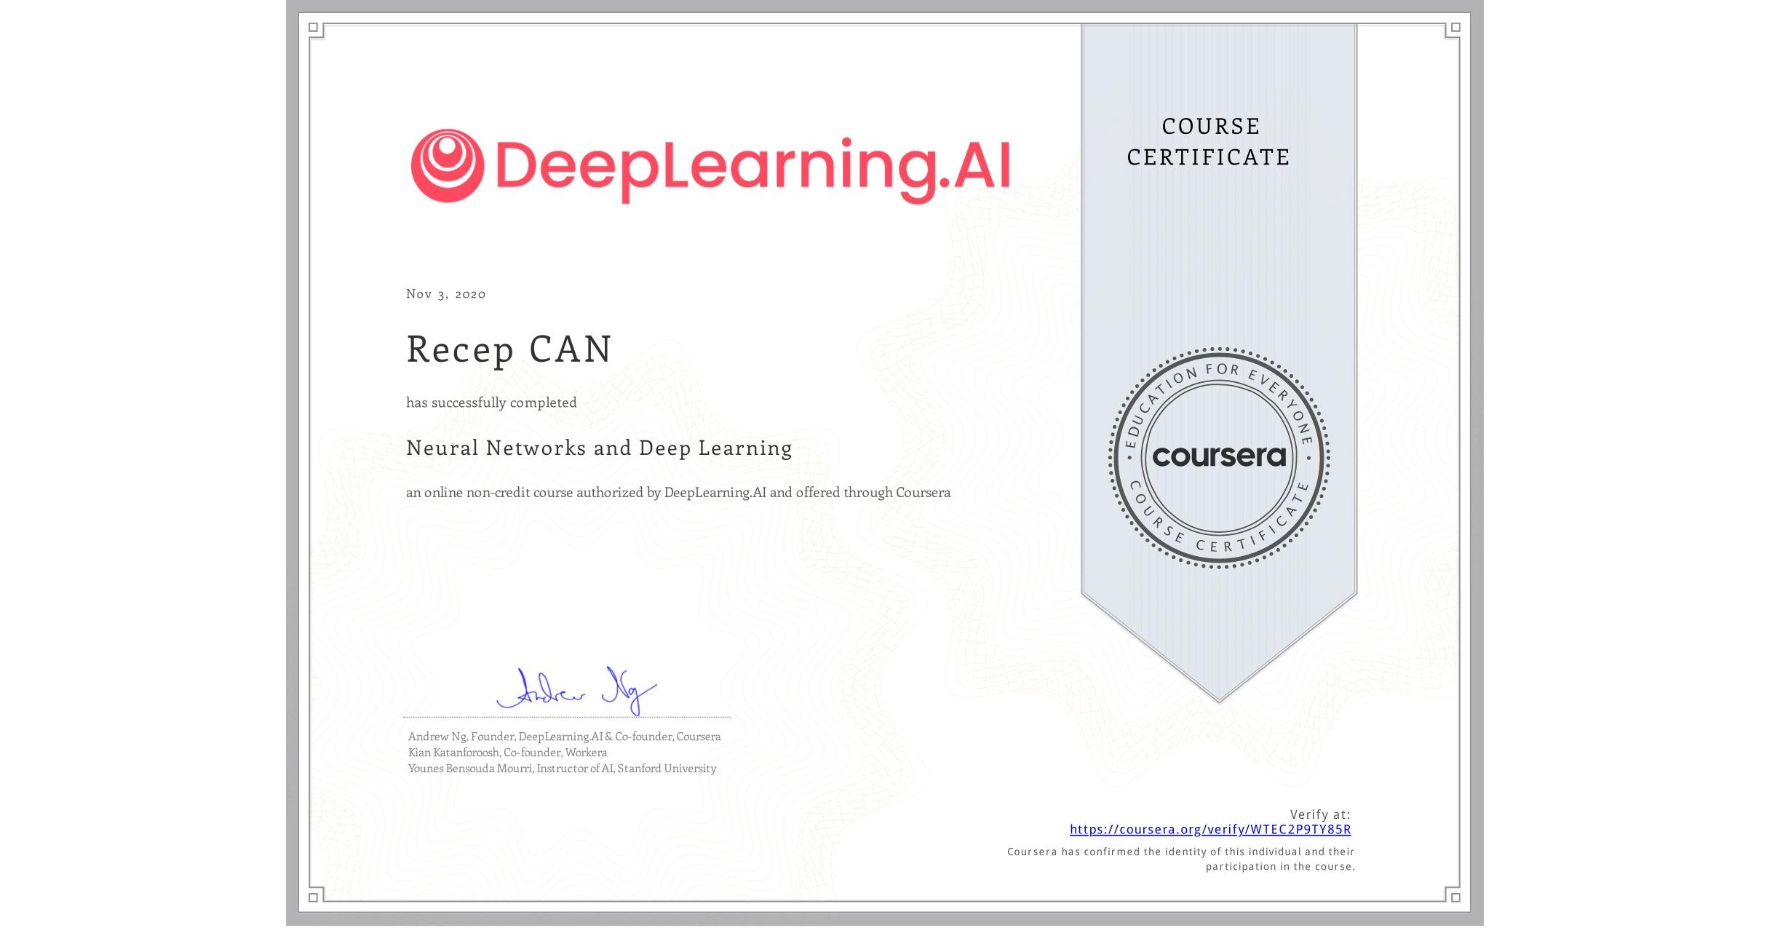 View certificate for Recep CAN, Neural Networks and Deep Learning, an online non-credit course authorized by DeepLearning.AI and offered through Coursera